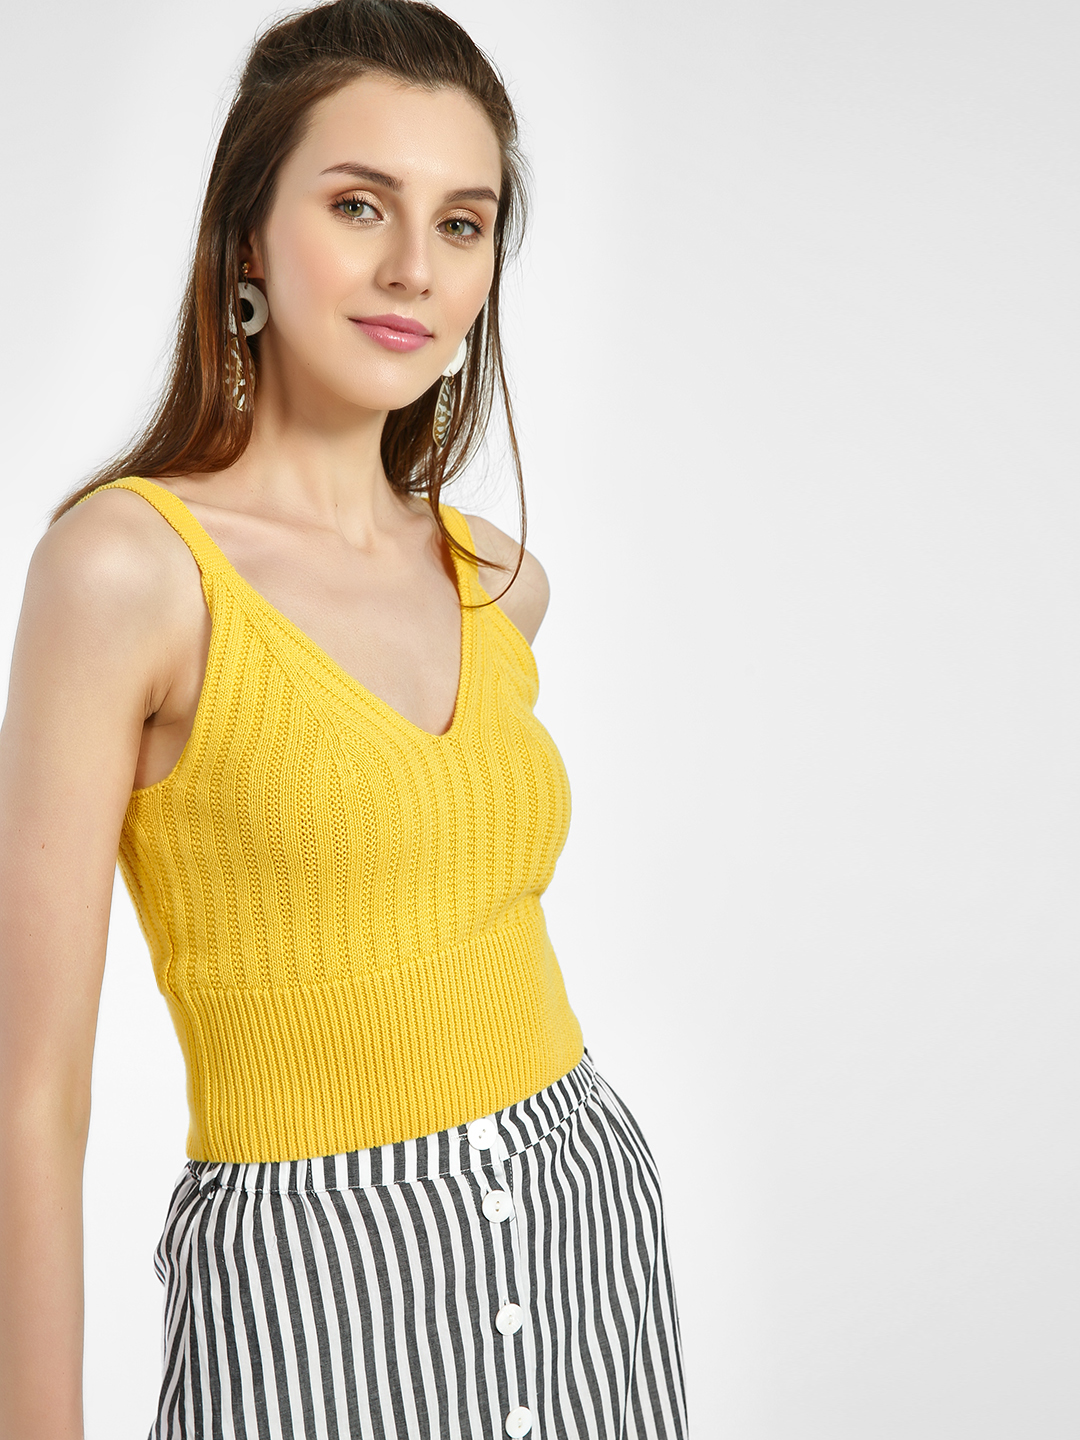 New Look BRIGHT YELLOW Ribbed Knitted Strappy Bralette 1